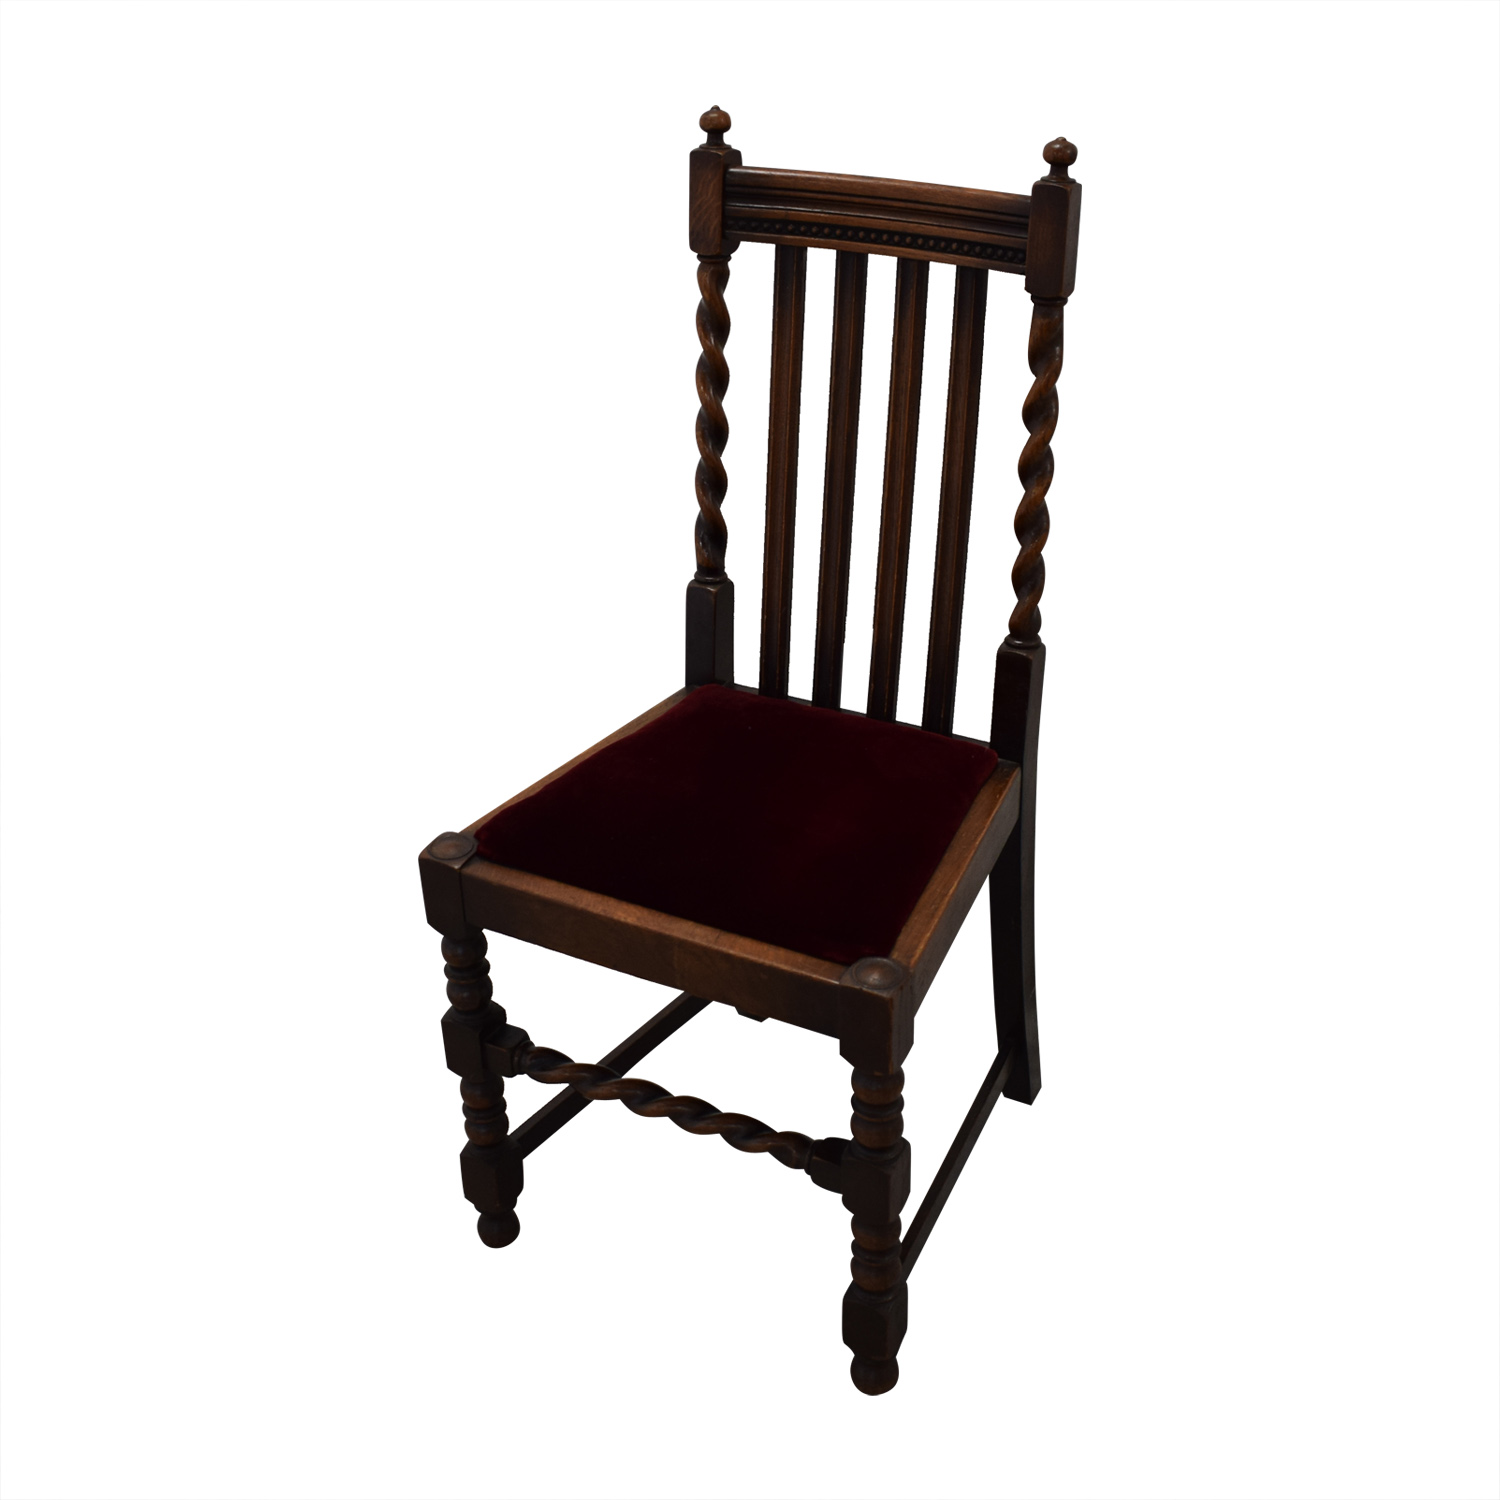 Jacobian Barley Twist Chairs Dining Chairs